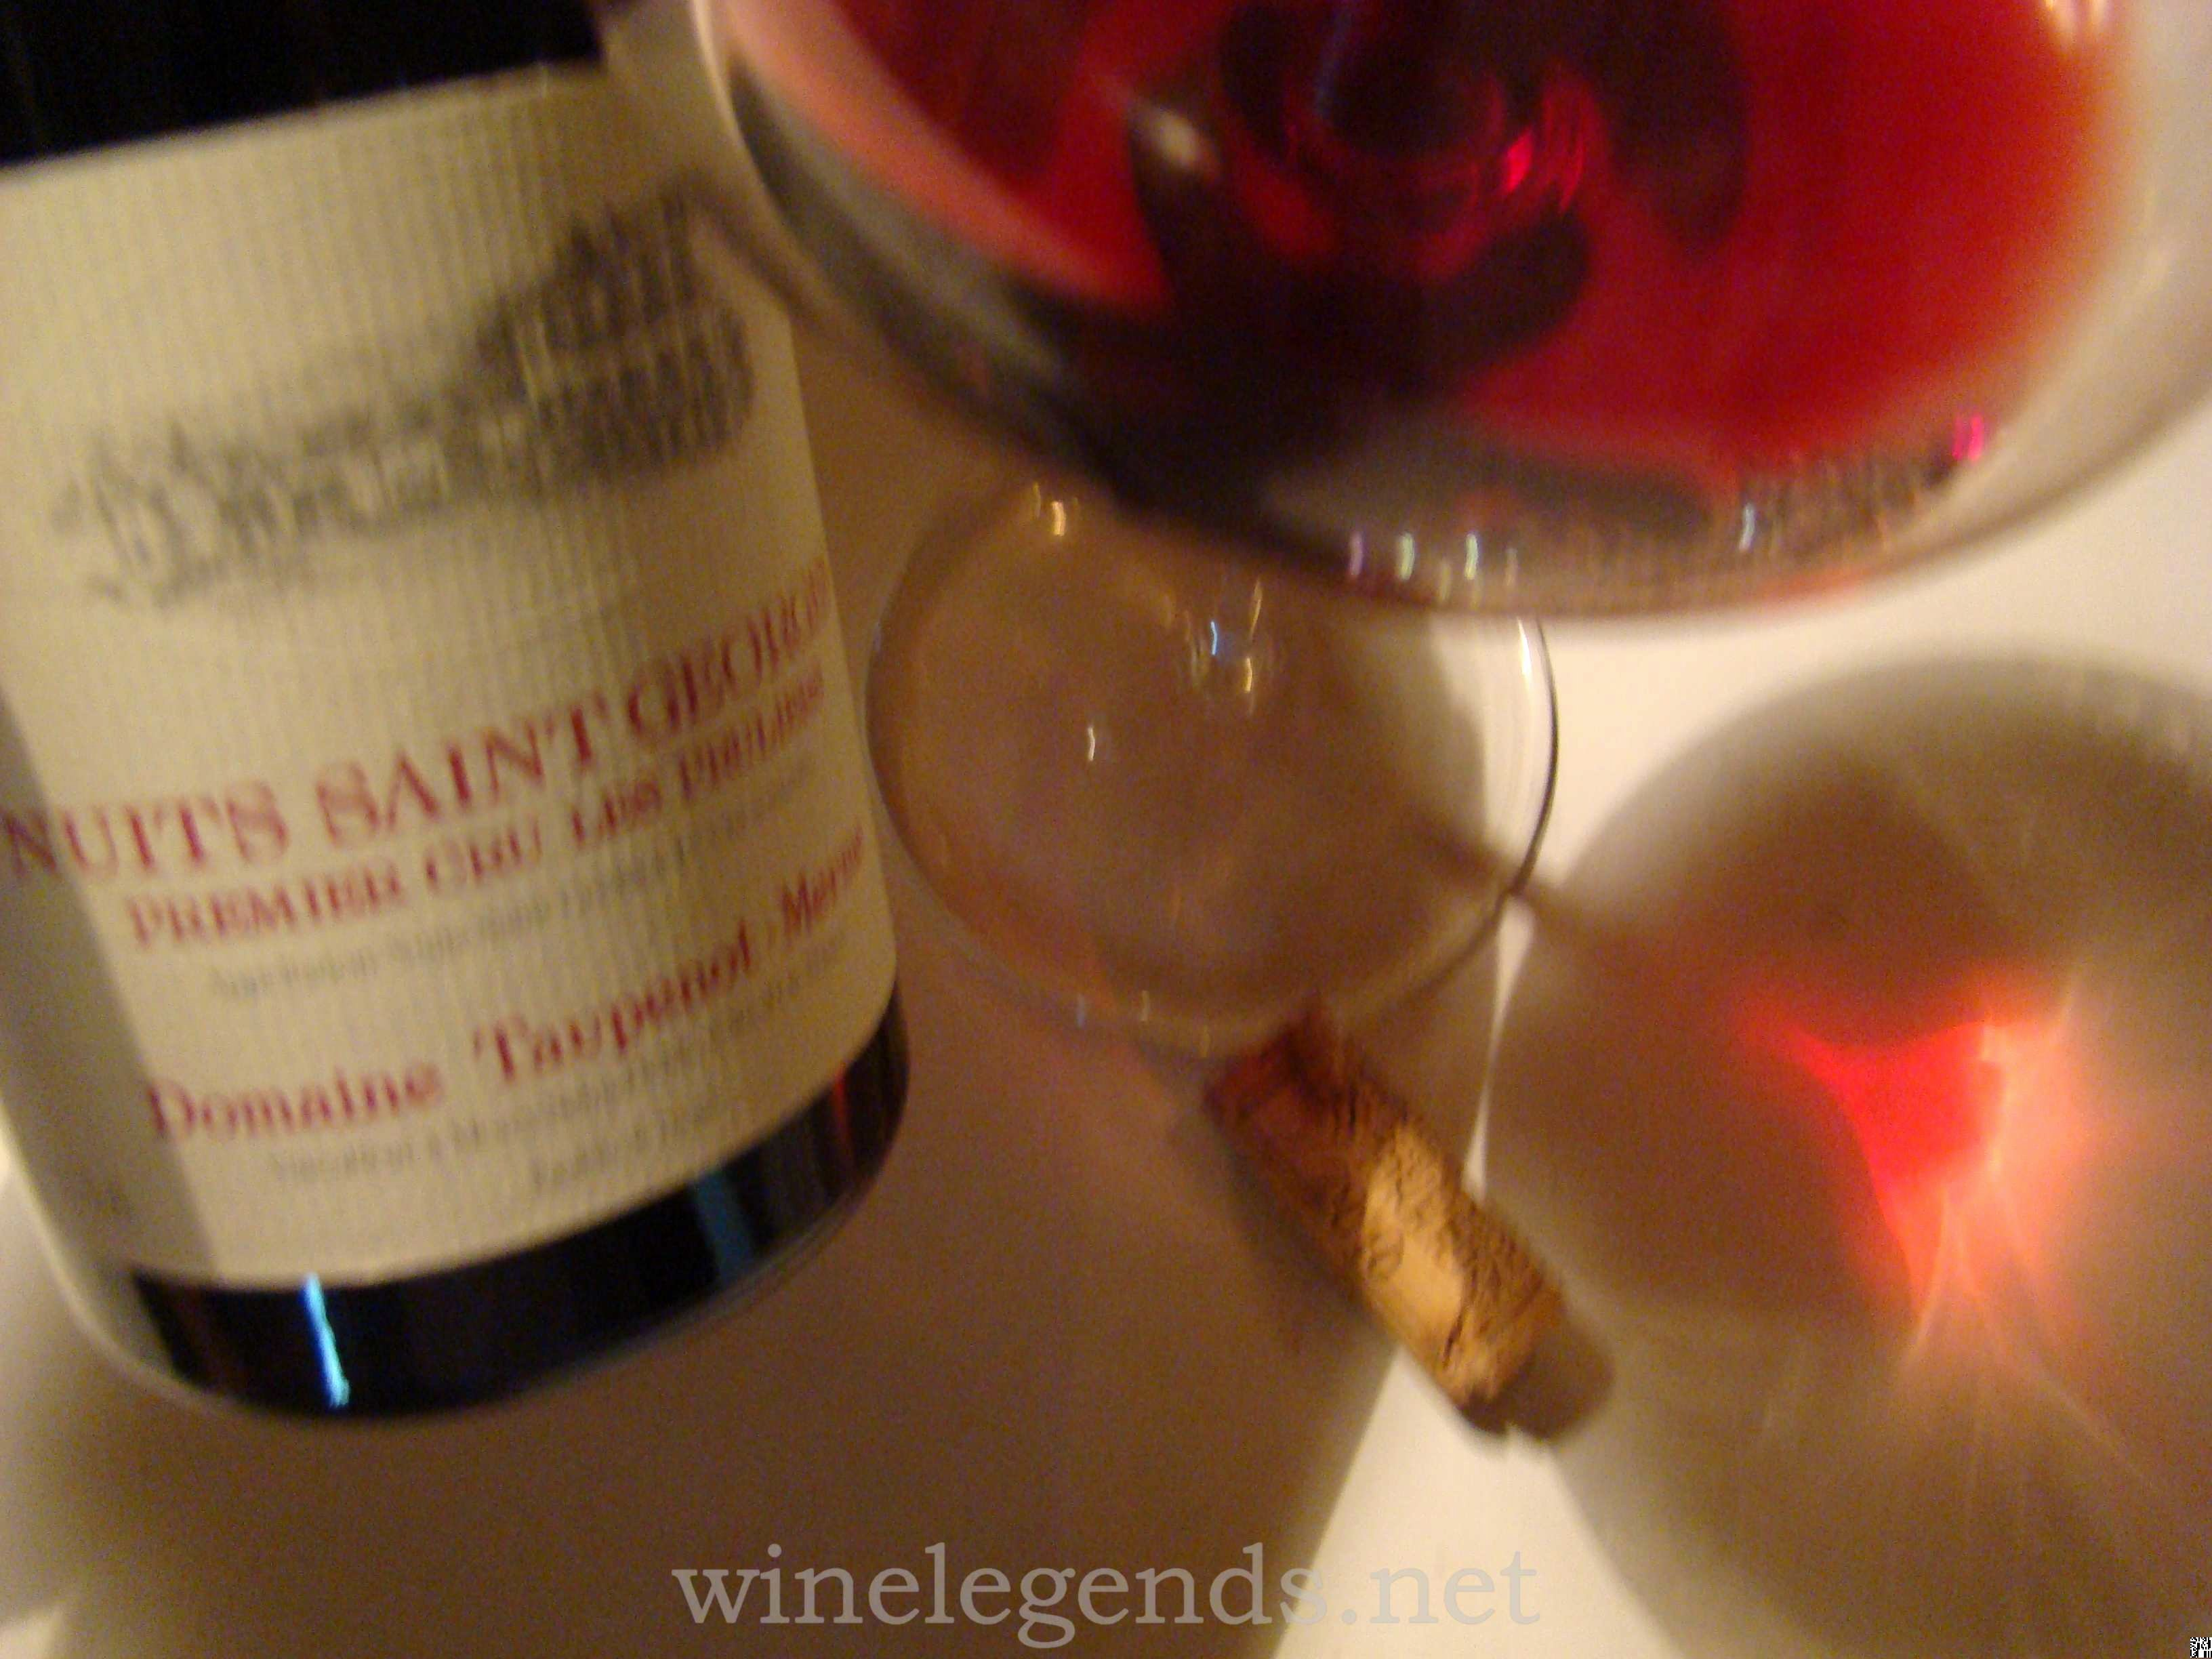 Wine Tasting Journal Template Lovely 2010 Taupenot Merme Nuits St Georges Premier Cru Les